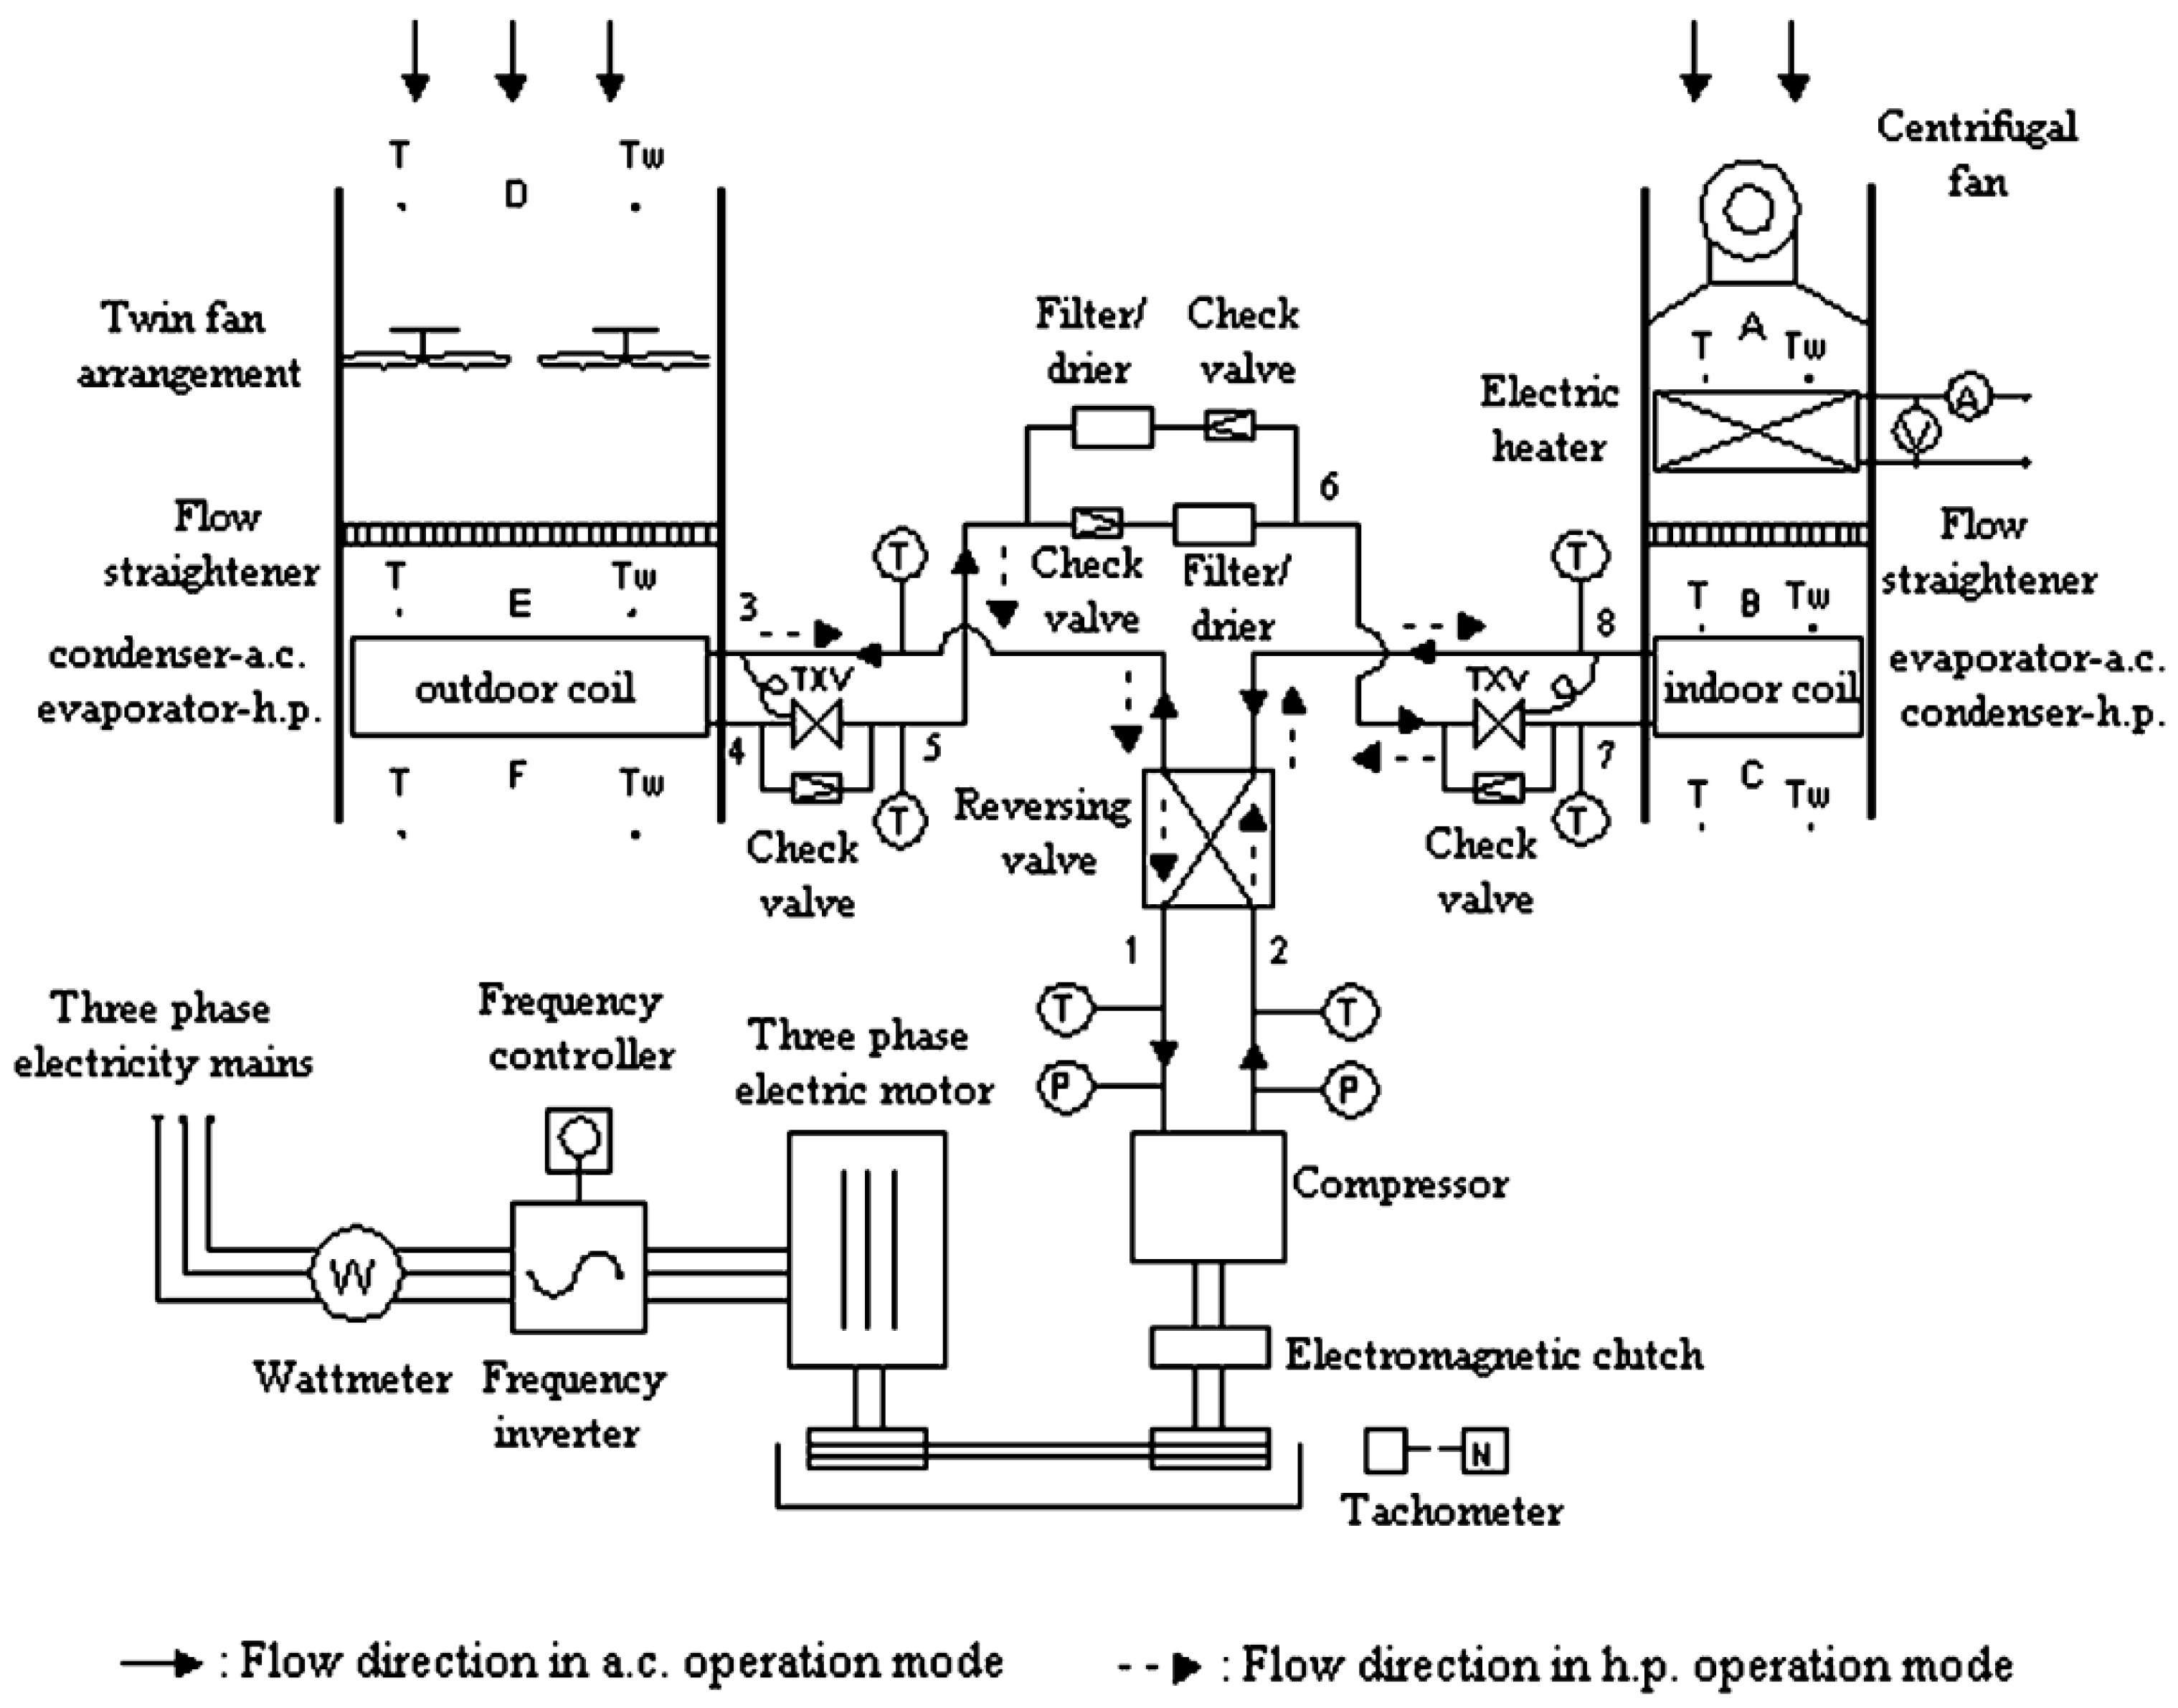 energies | free full-text | progress in heat pump air conditioning, Wiring diagram